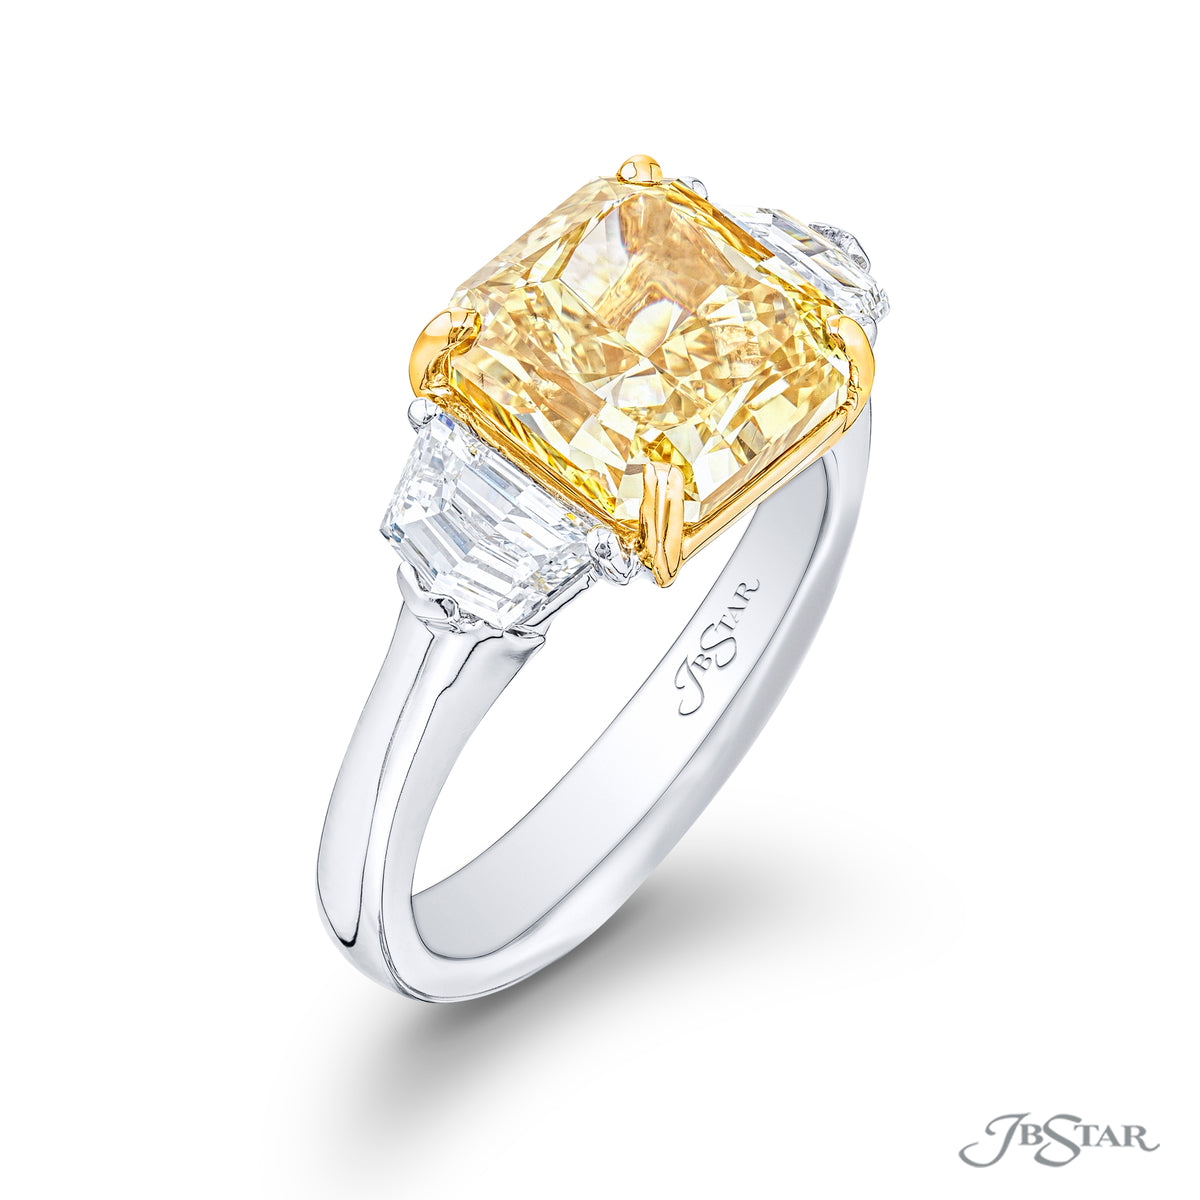 JB Star Platinum and 18K Yellow Gold Ring with a 4.57ct Fancy Deep Yellow Radiant Cut Diamond